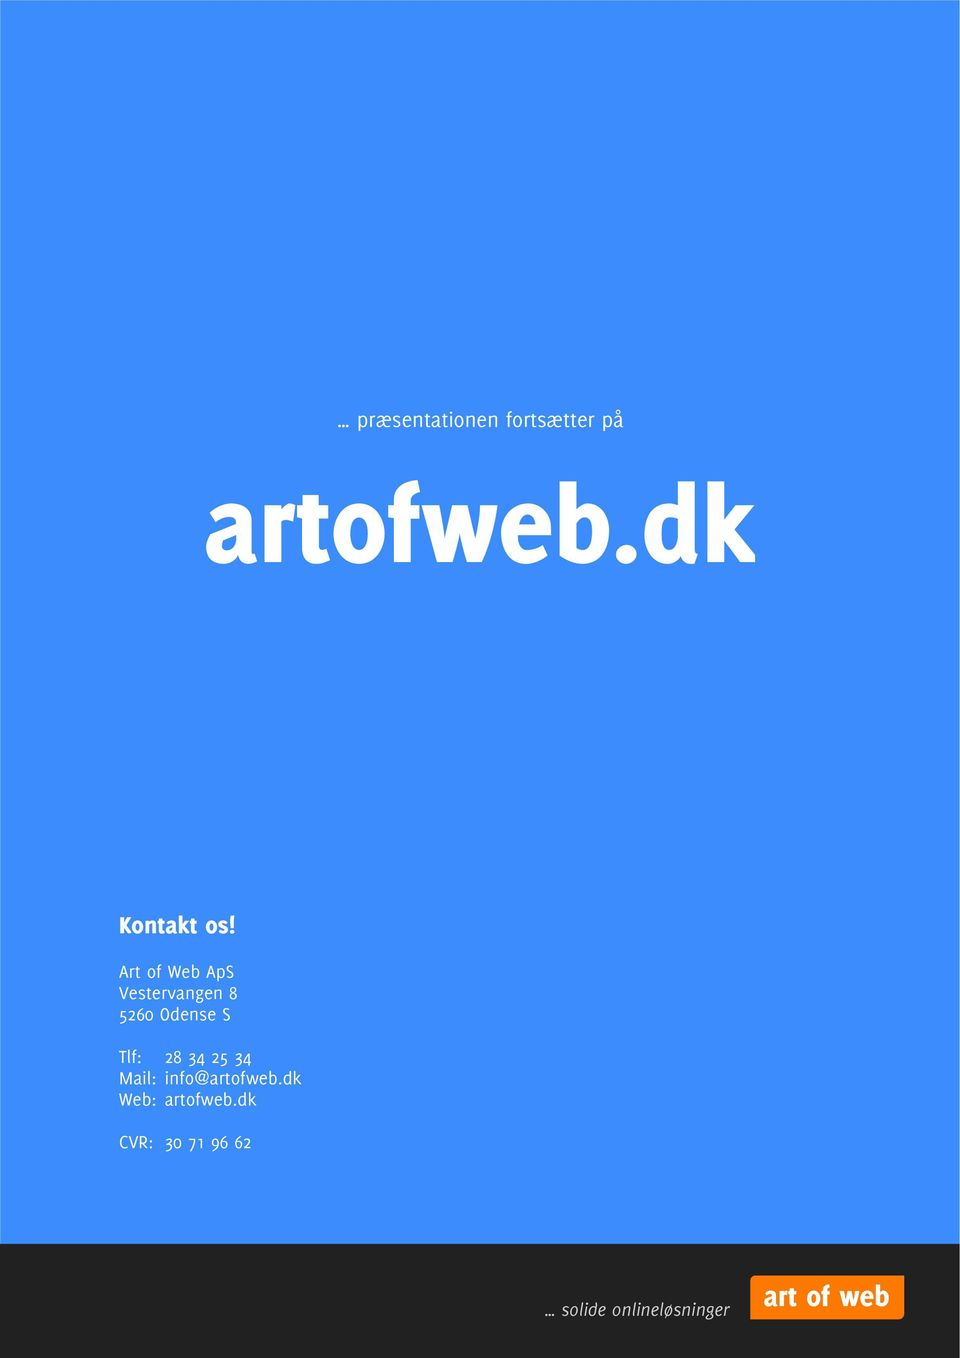 Art of Web ApS Vestervangen 8 5260 Odense S Tlf: